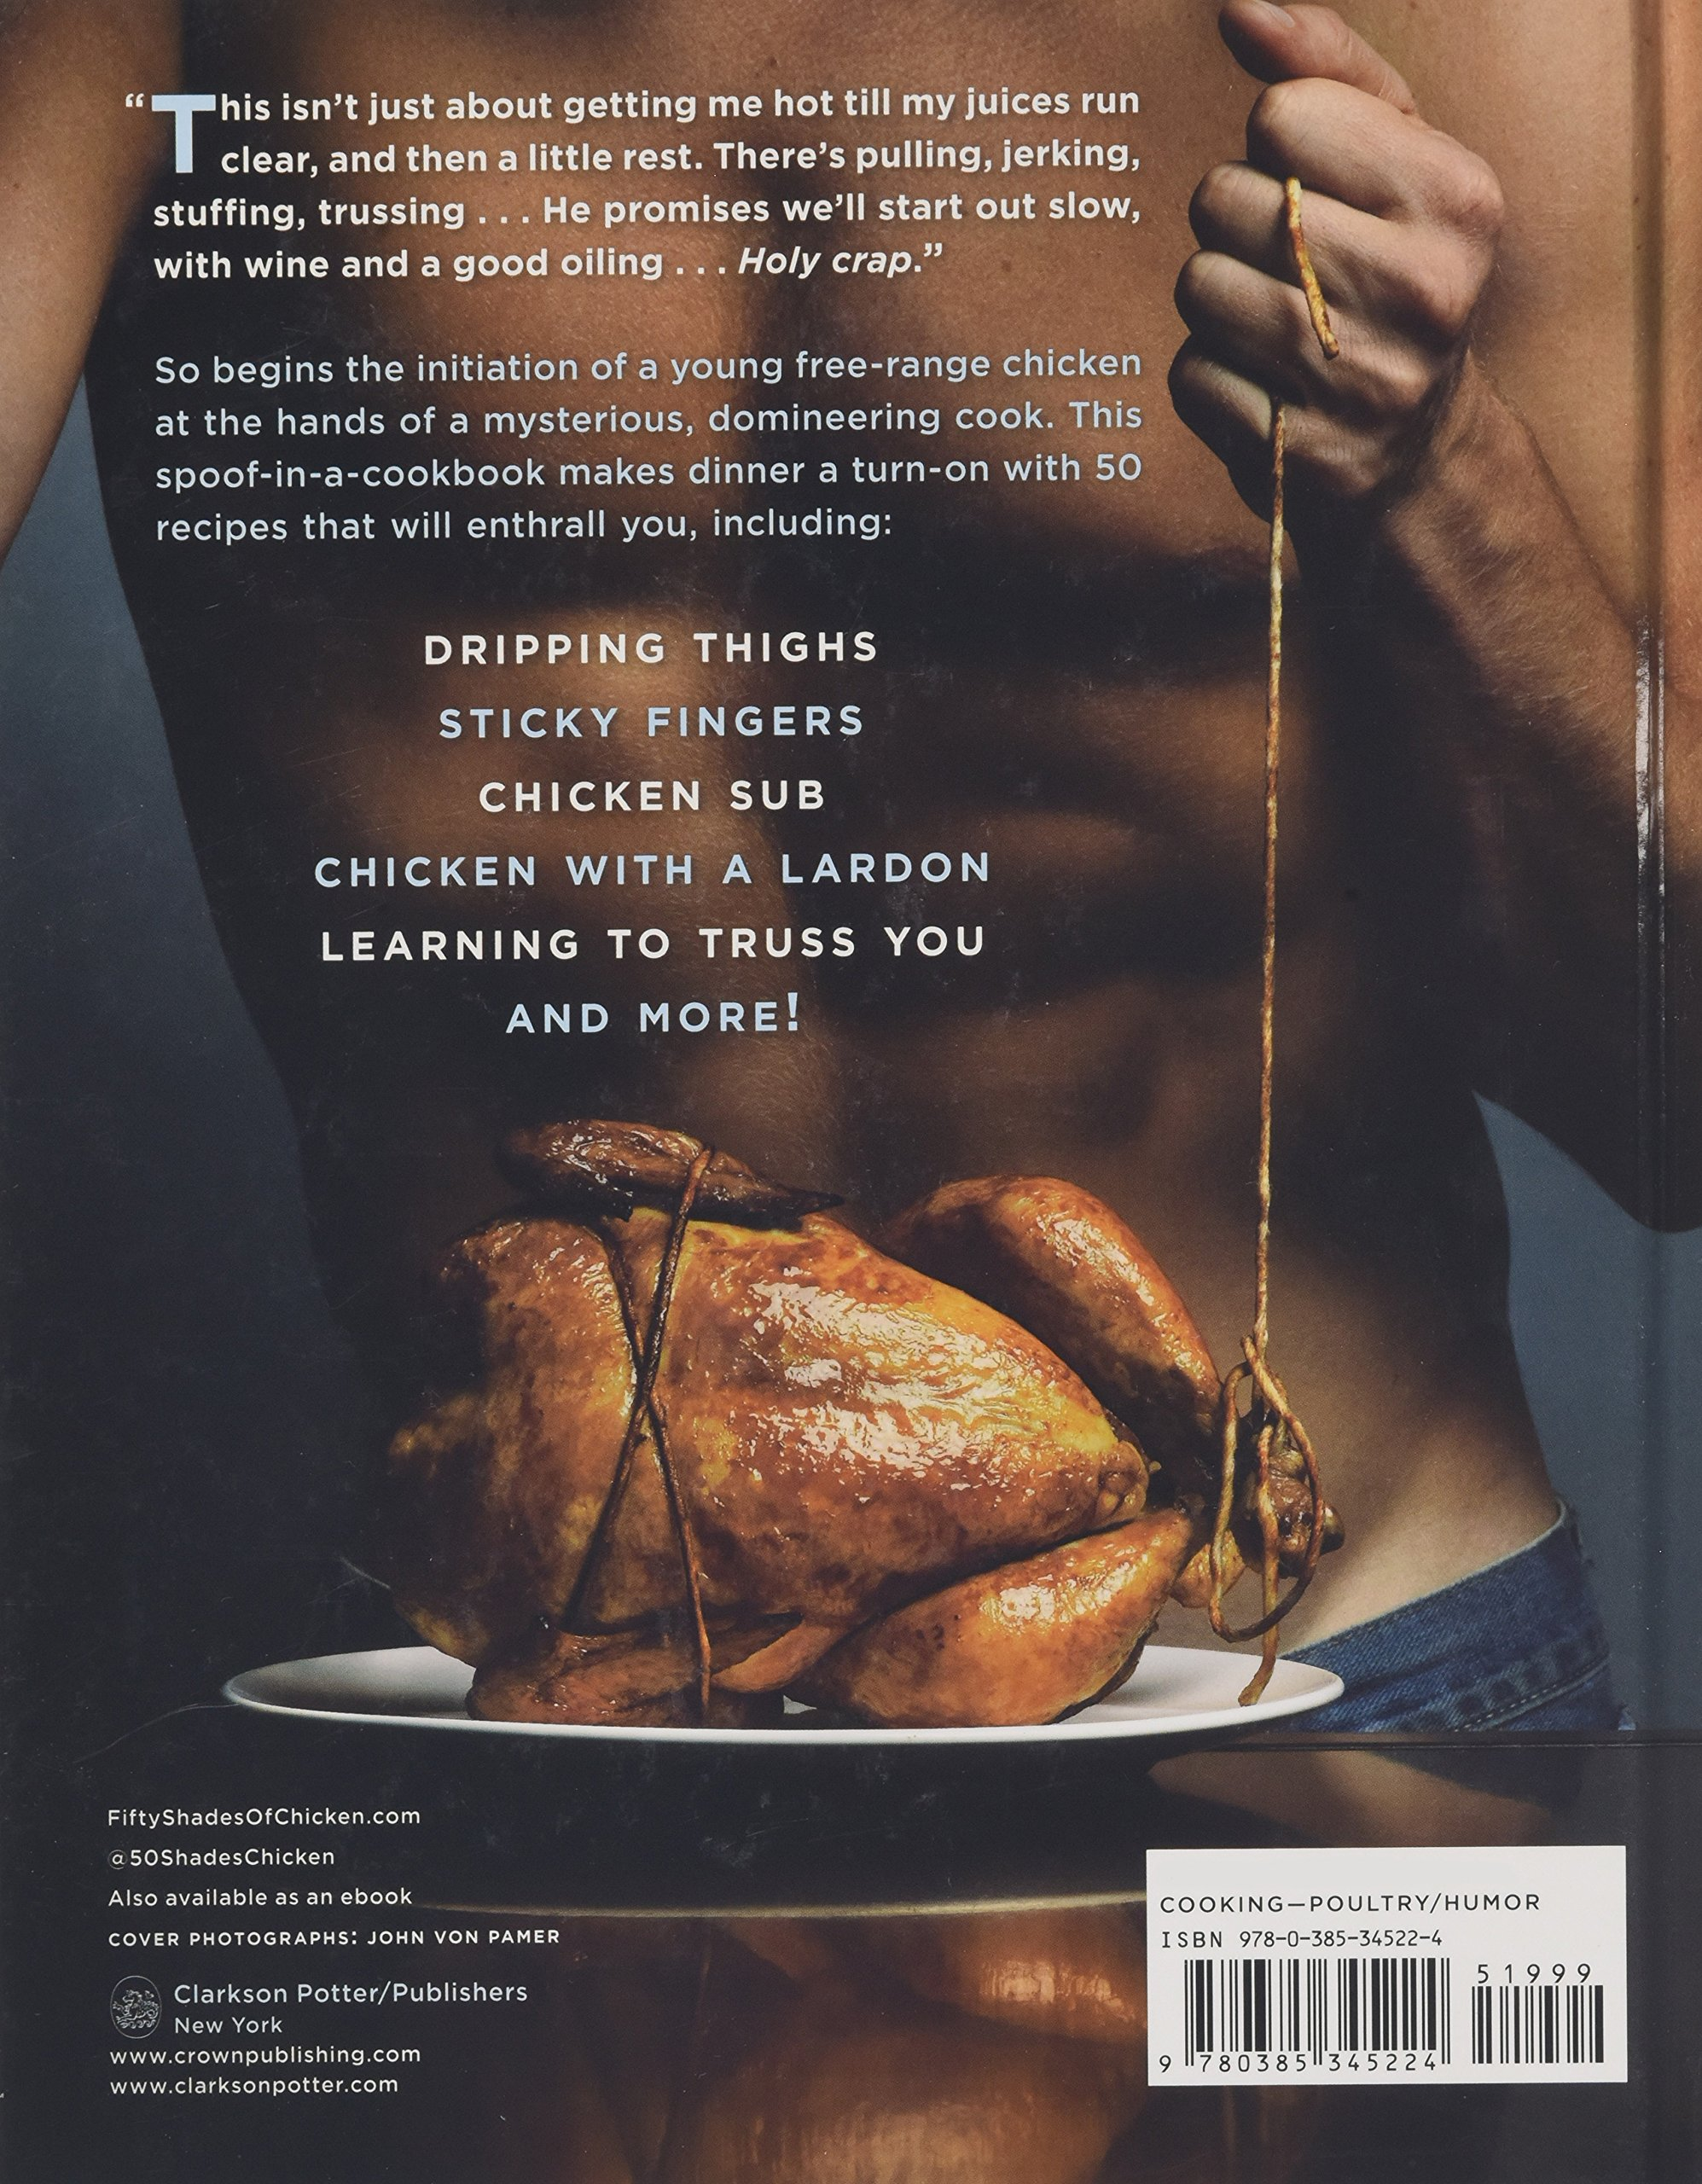 Fifty Shades of Chicken book